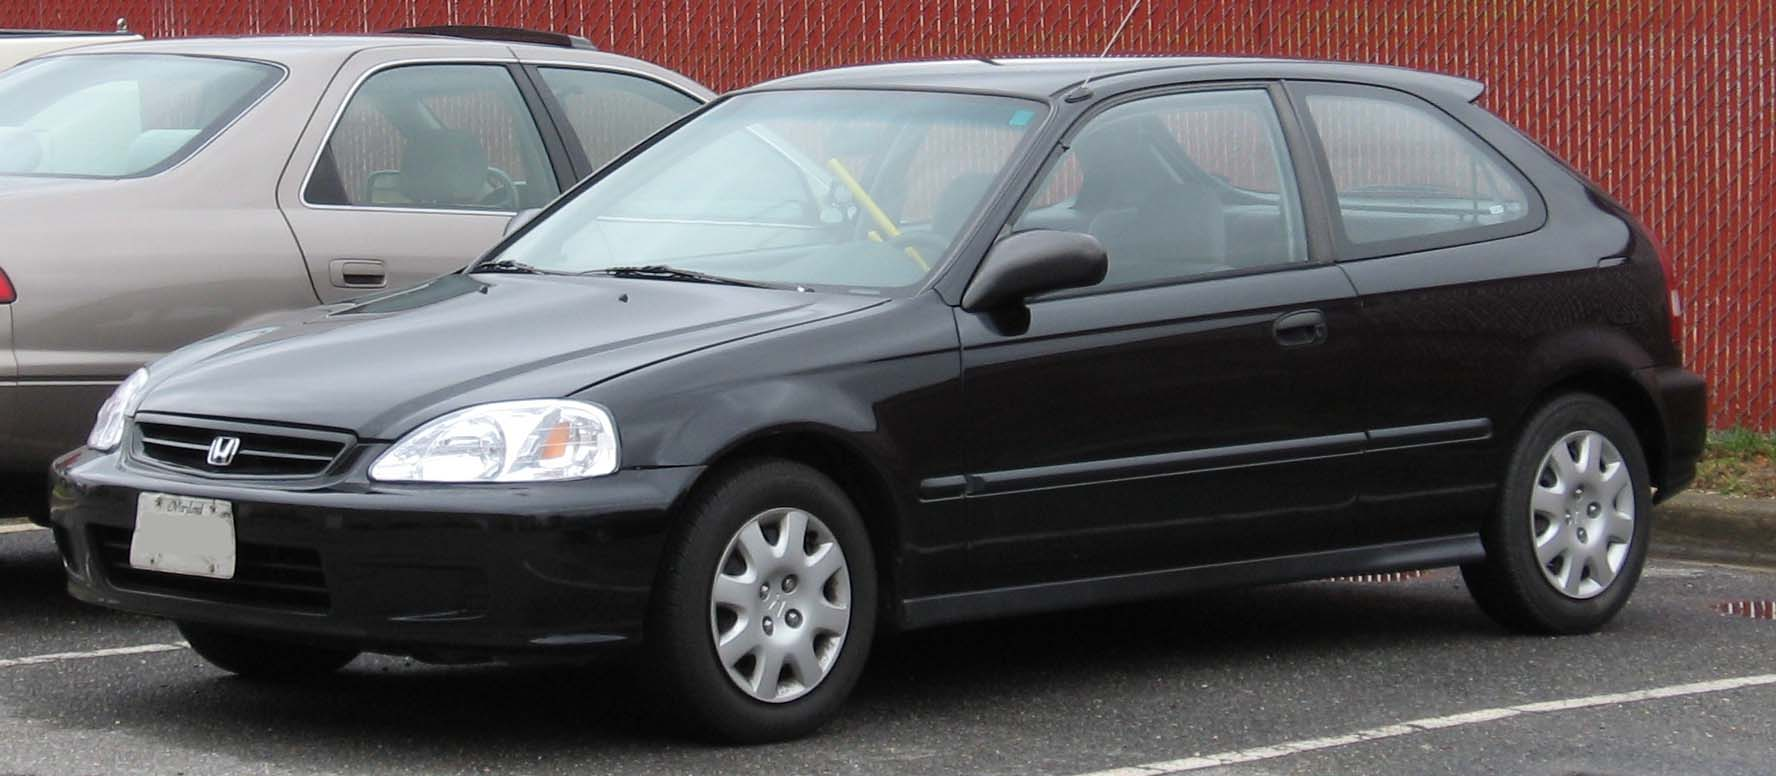 File:2000 Honda Civic Hatchback